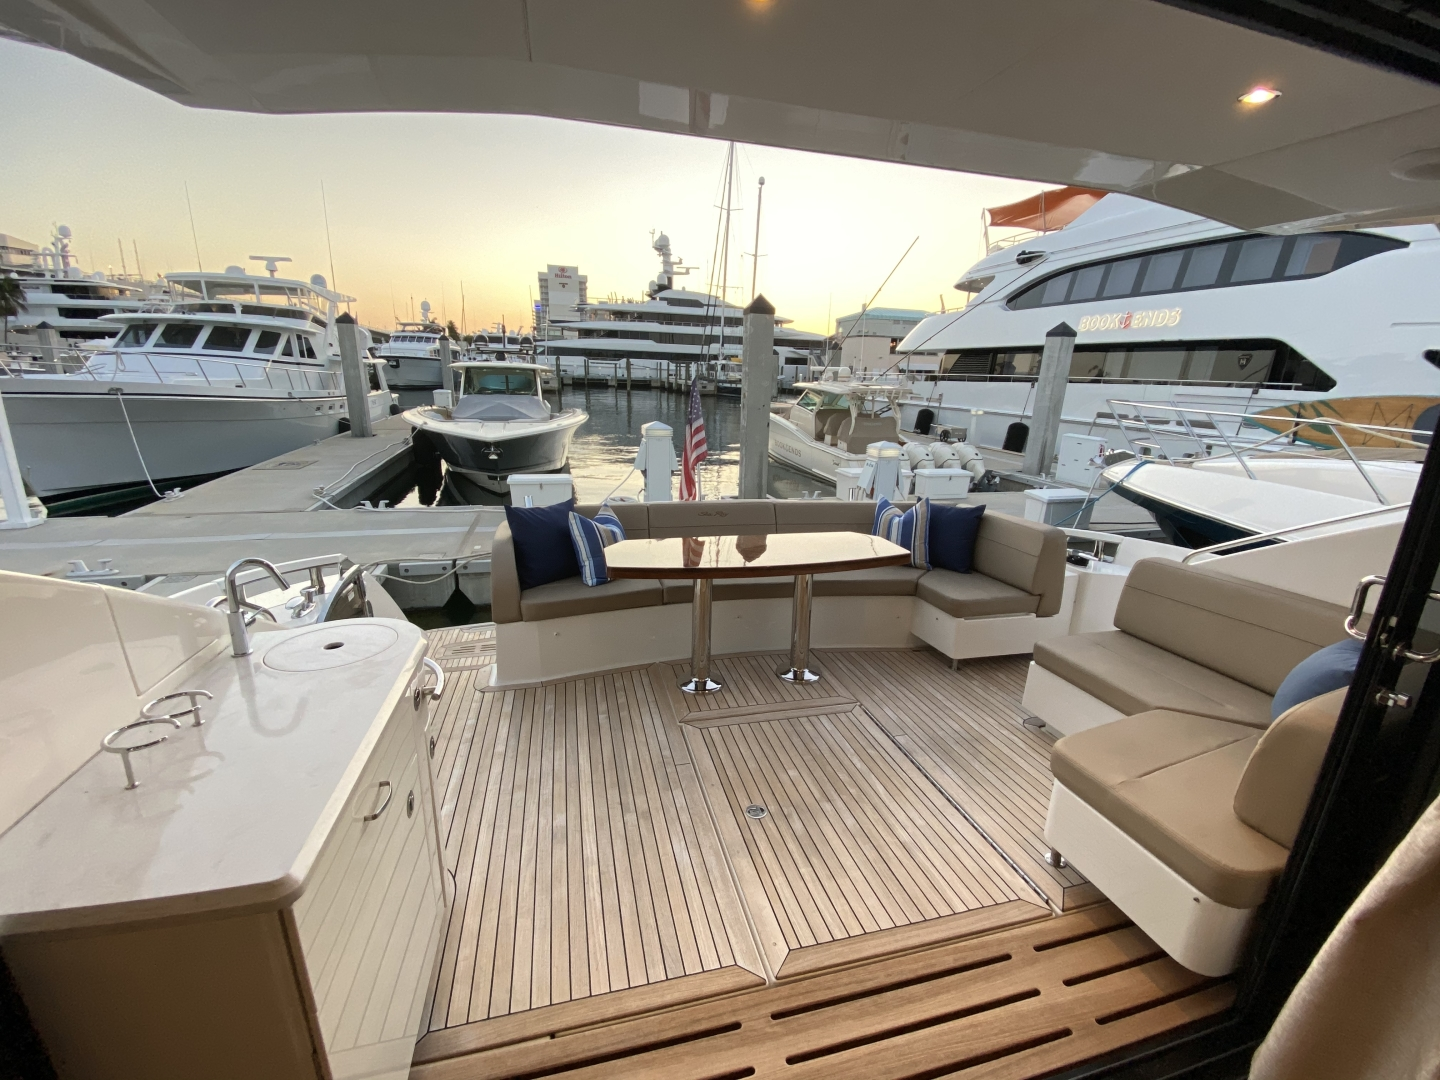 Sea Ray-L650 Express 2016-Cozy Fort Lauderdale-Florida-United States-2016 Sea Ray L650 Cozy   Cockpit-1372397 | Thumbnail